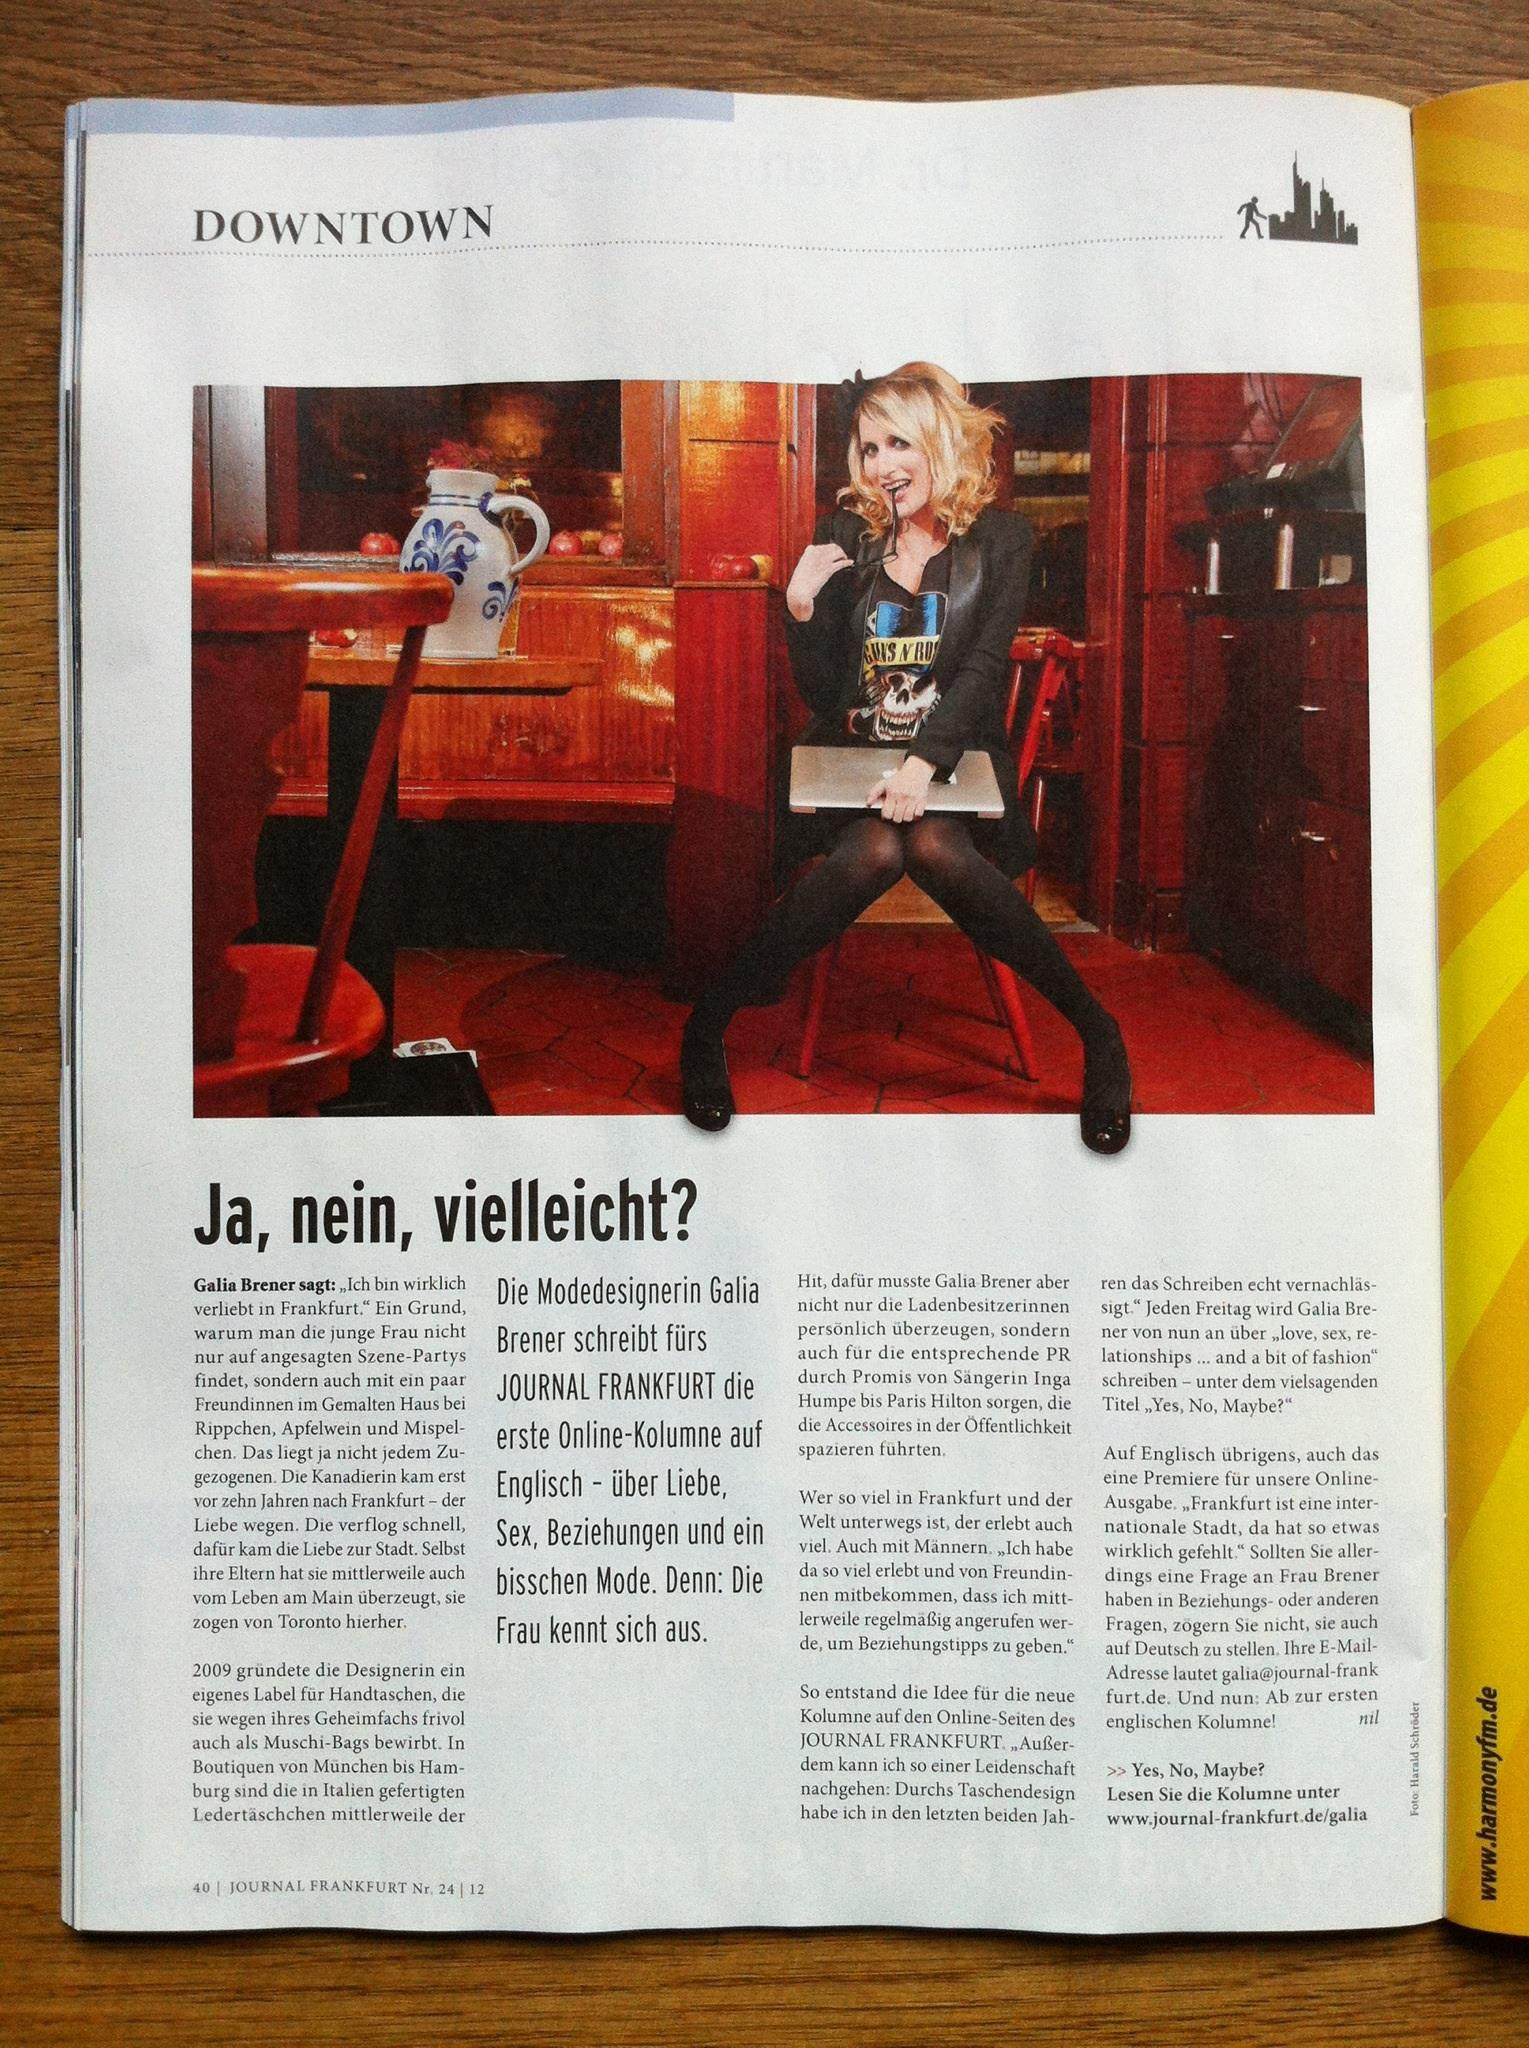 Journal_Frankfurt 09.11.2012_Yes, No, Maybe? promo_3